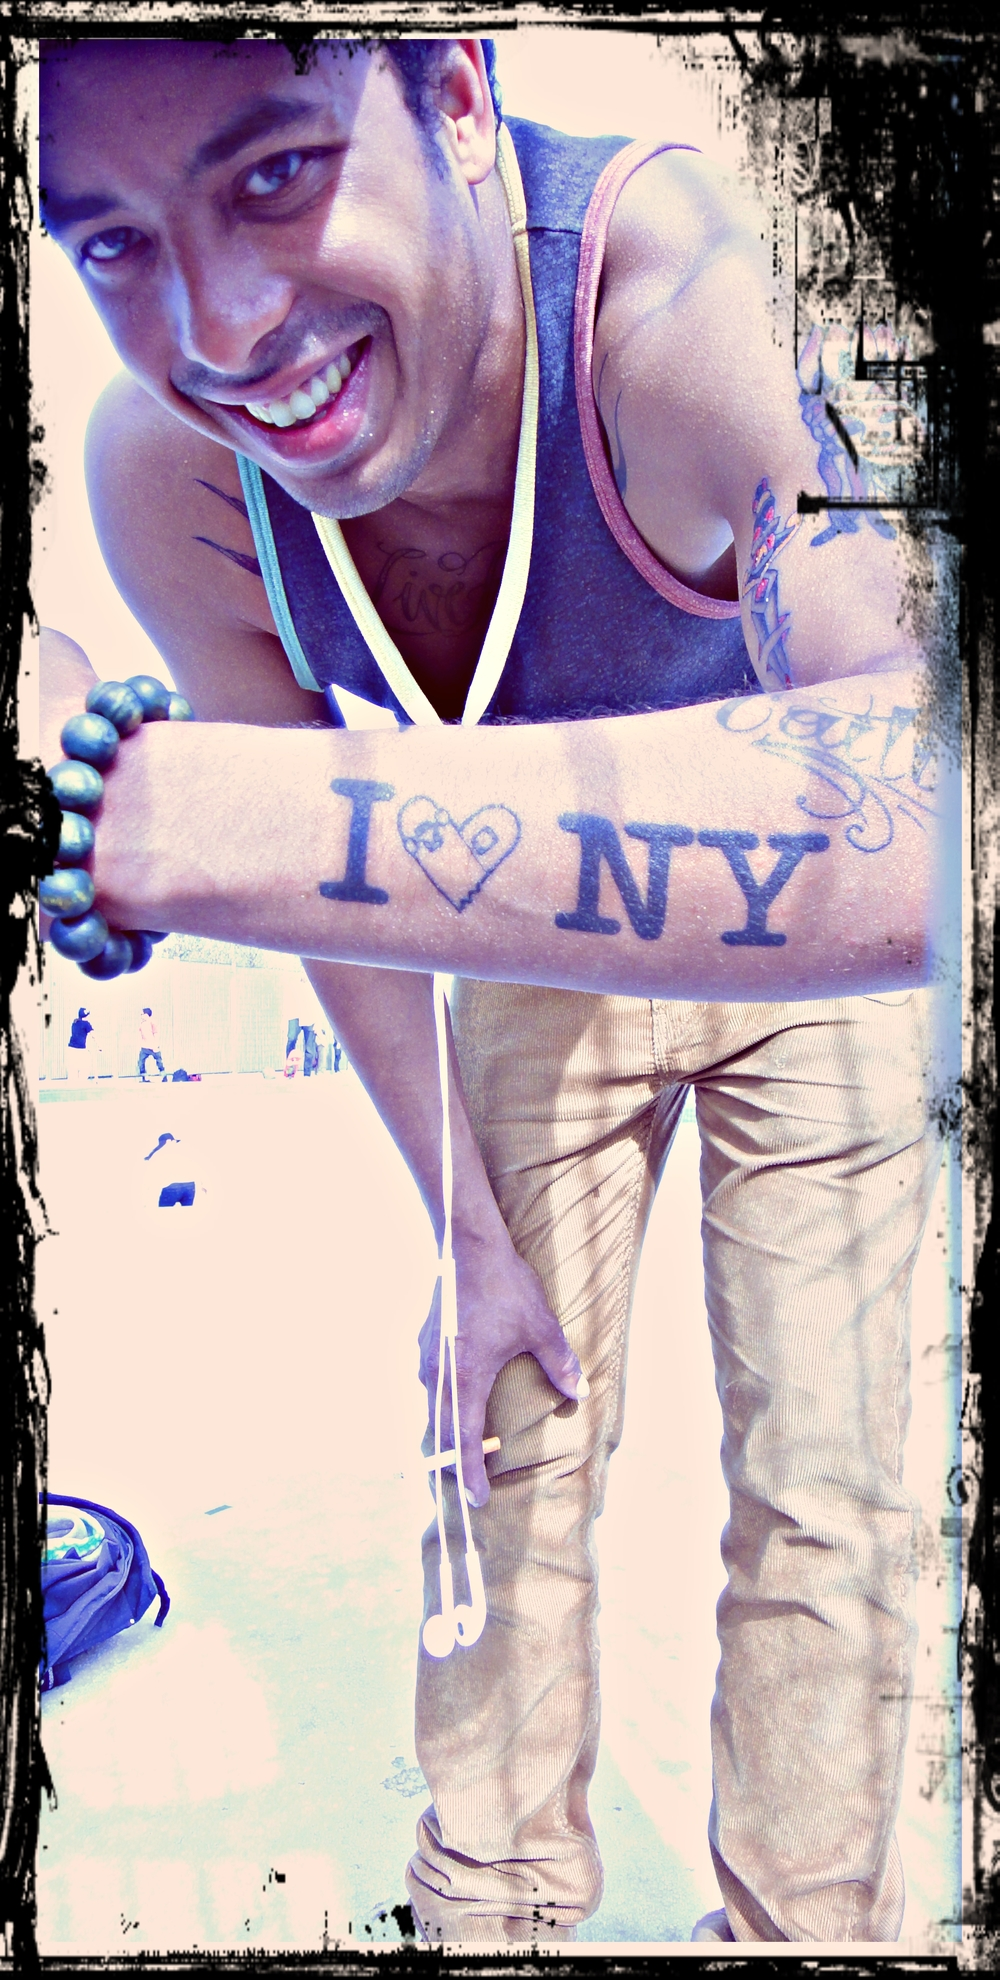 One of the skaters had the coolest tattoo. We all love NYC.